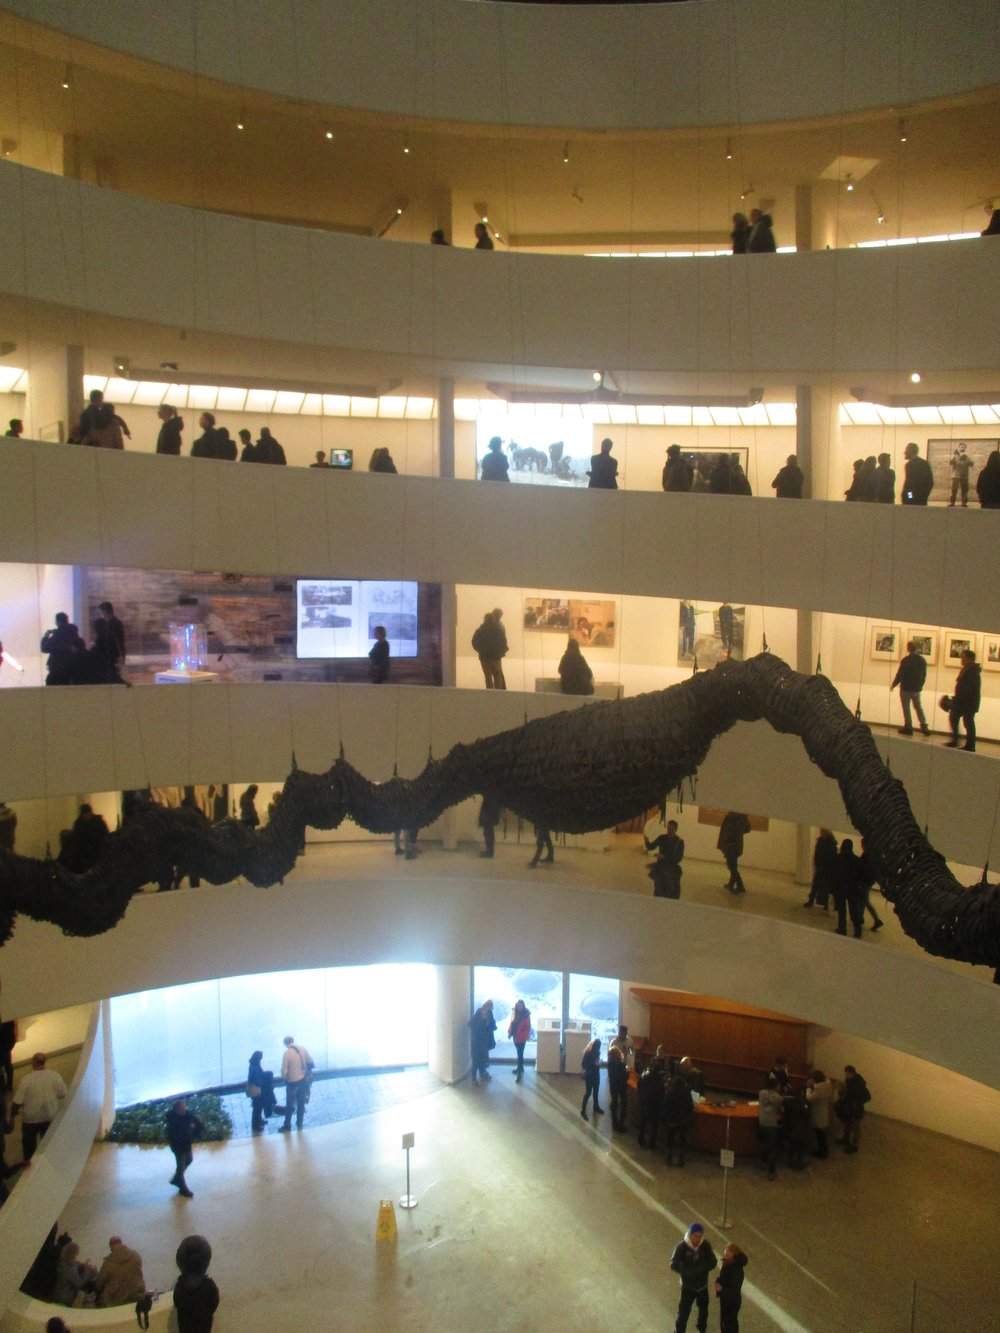 A large intestine has colonized the Guggenheim.